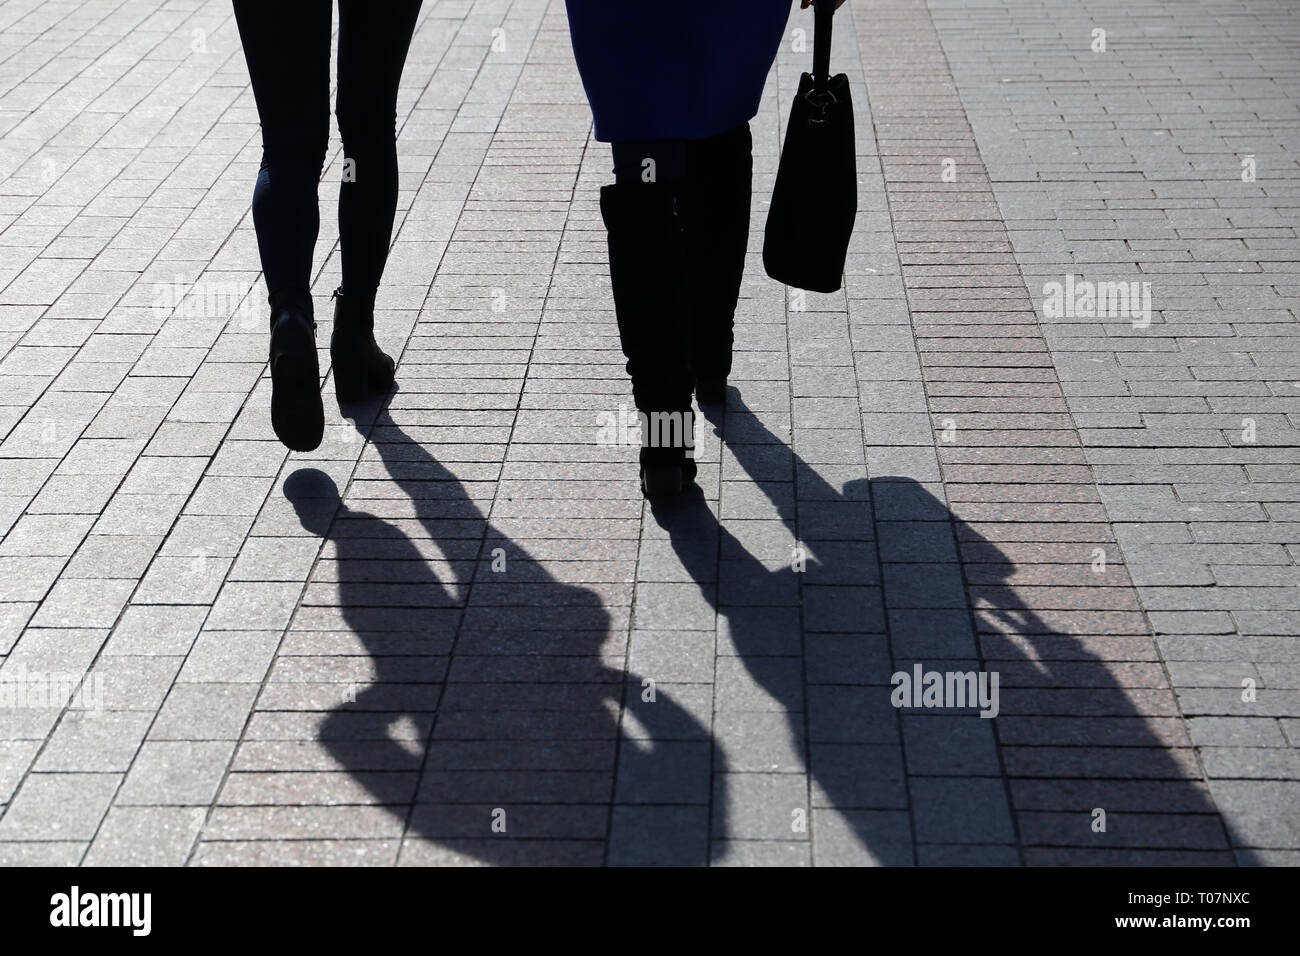 Spring Silhouettes And Shadows >> Two Women Walking Down The Street Black Silhouettes And Shadows On